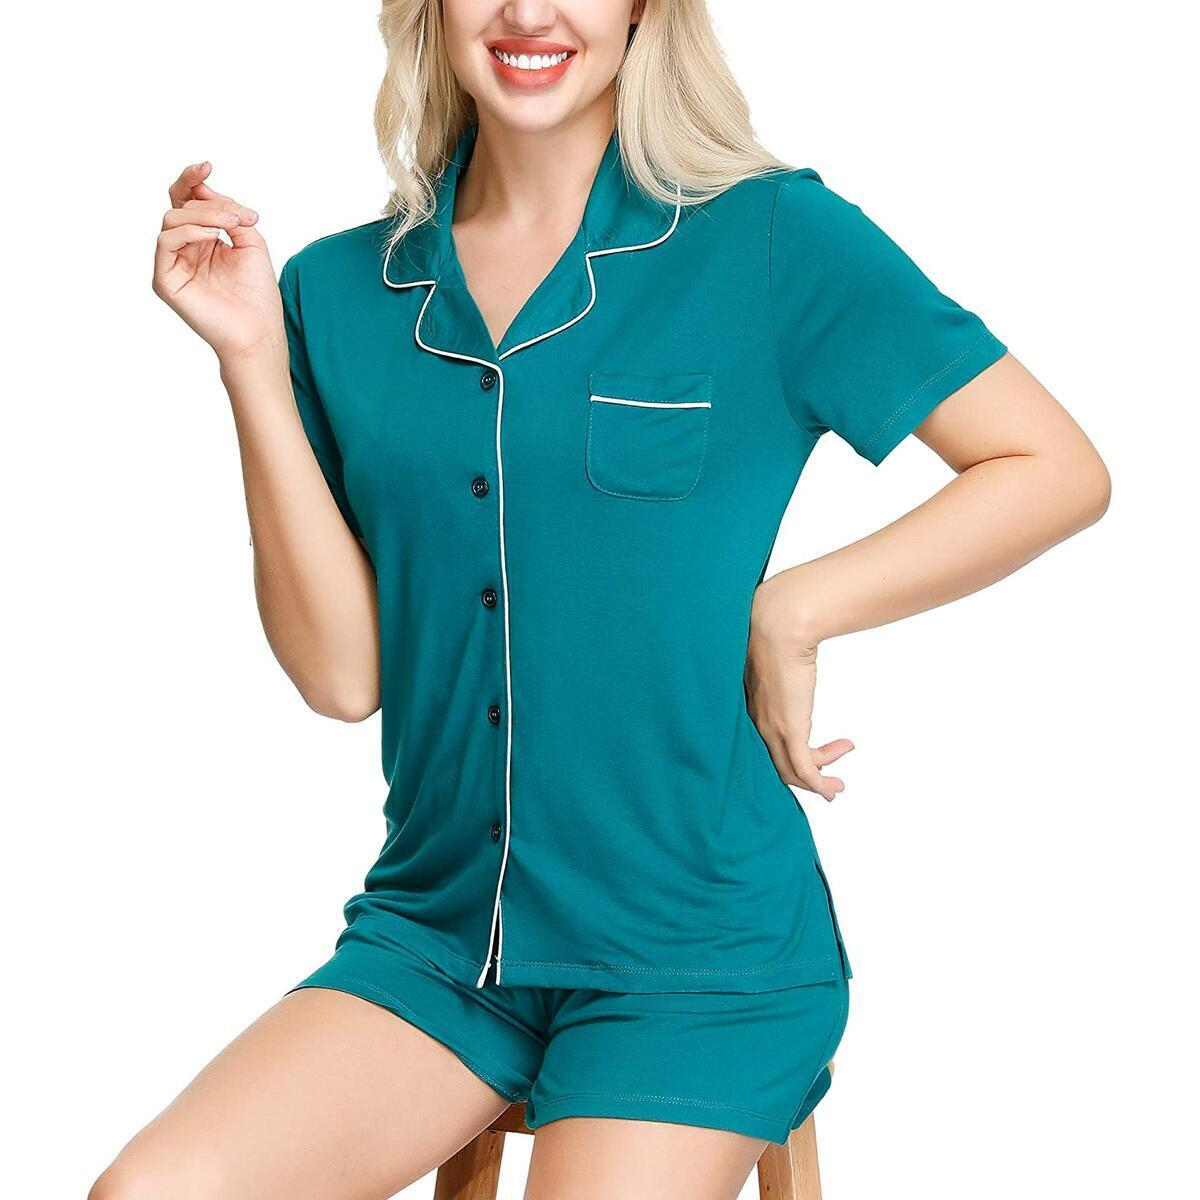 Women Pajama Shorts Set | Notch Collar Short Sleeve Buttons Sleepwear Soft Nightwear - All Colors and Sizes